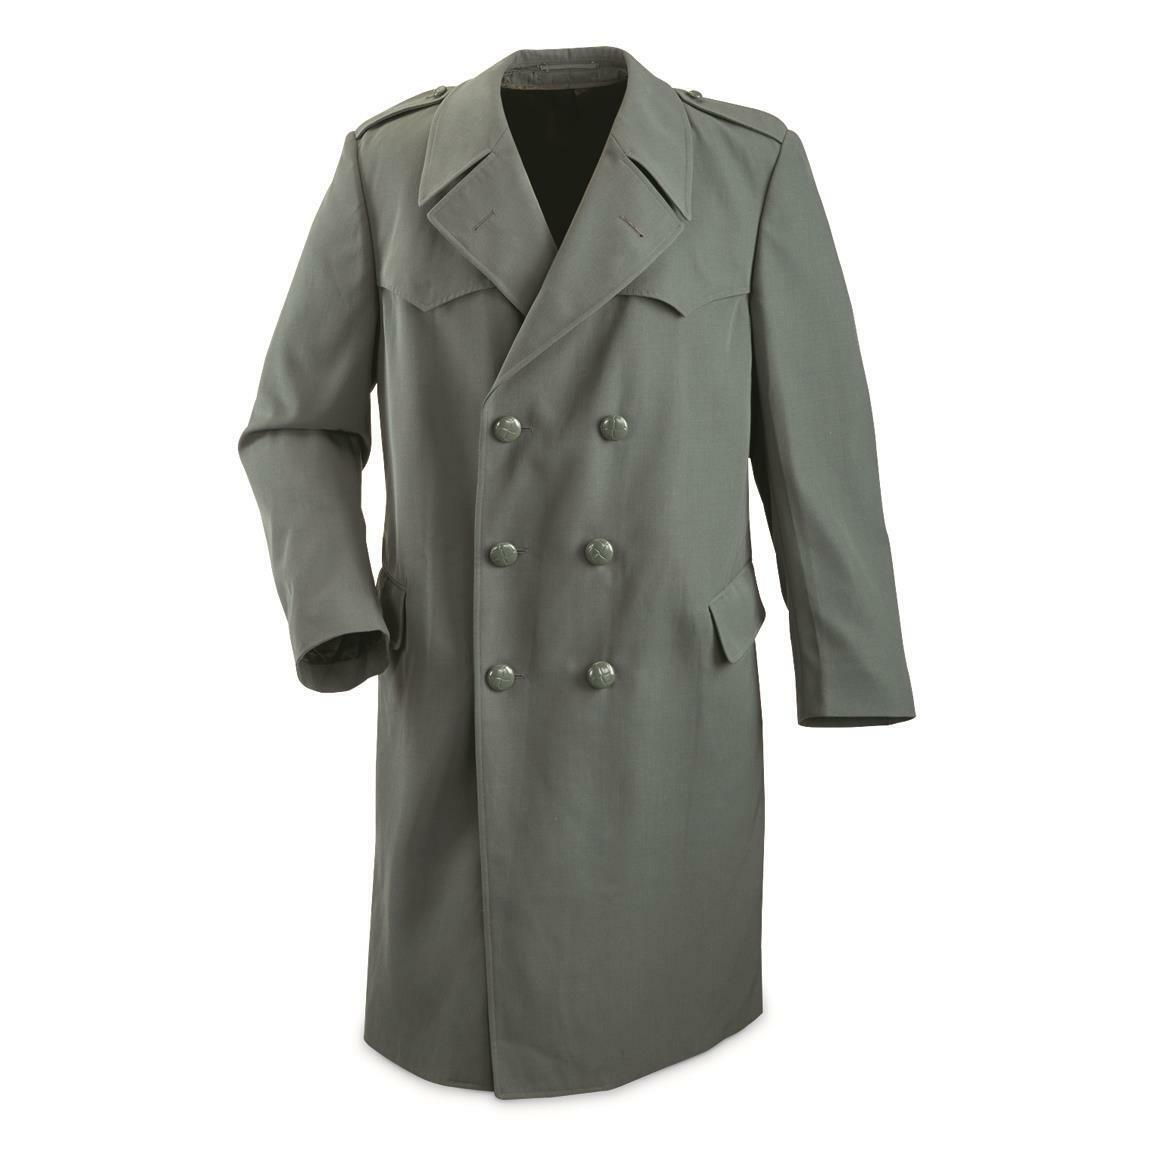 USED Italian Air Force Surplus Double Breasted Trench Coat Large